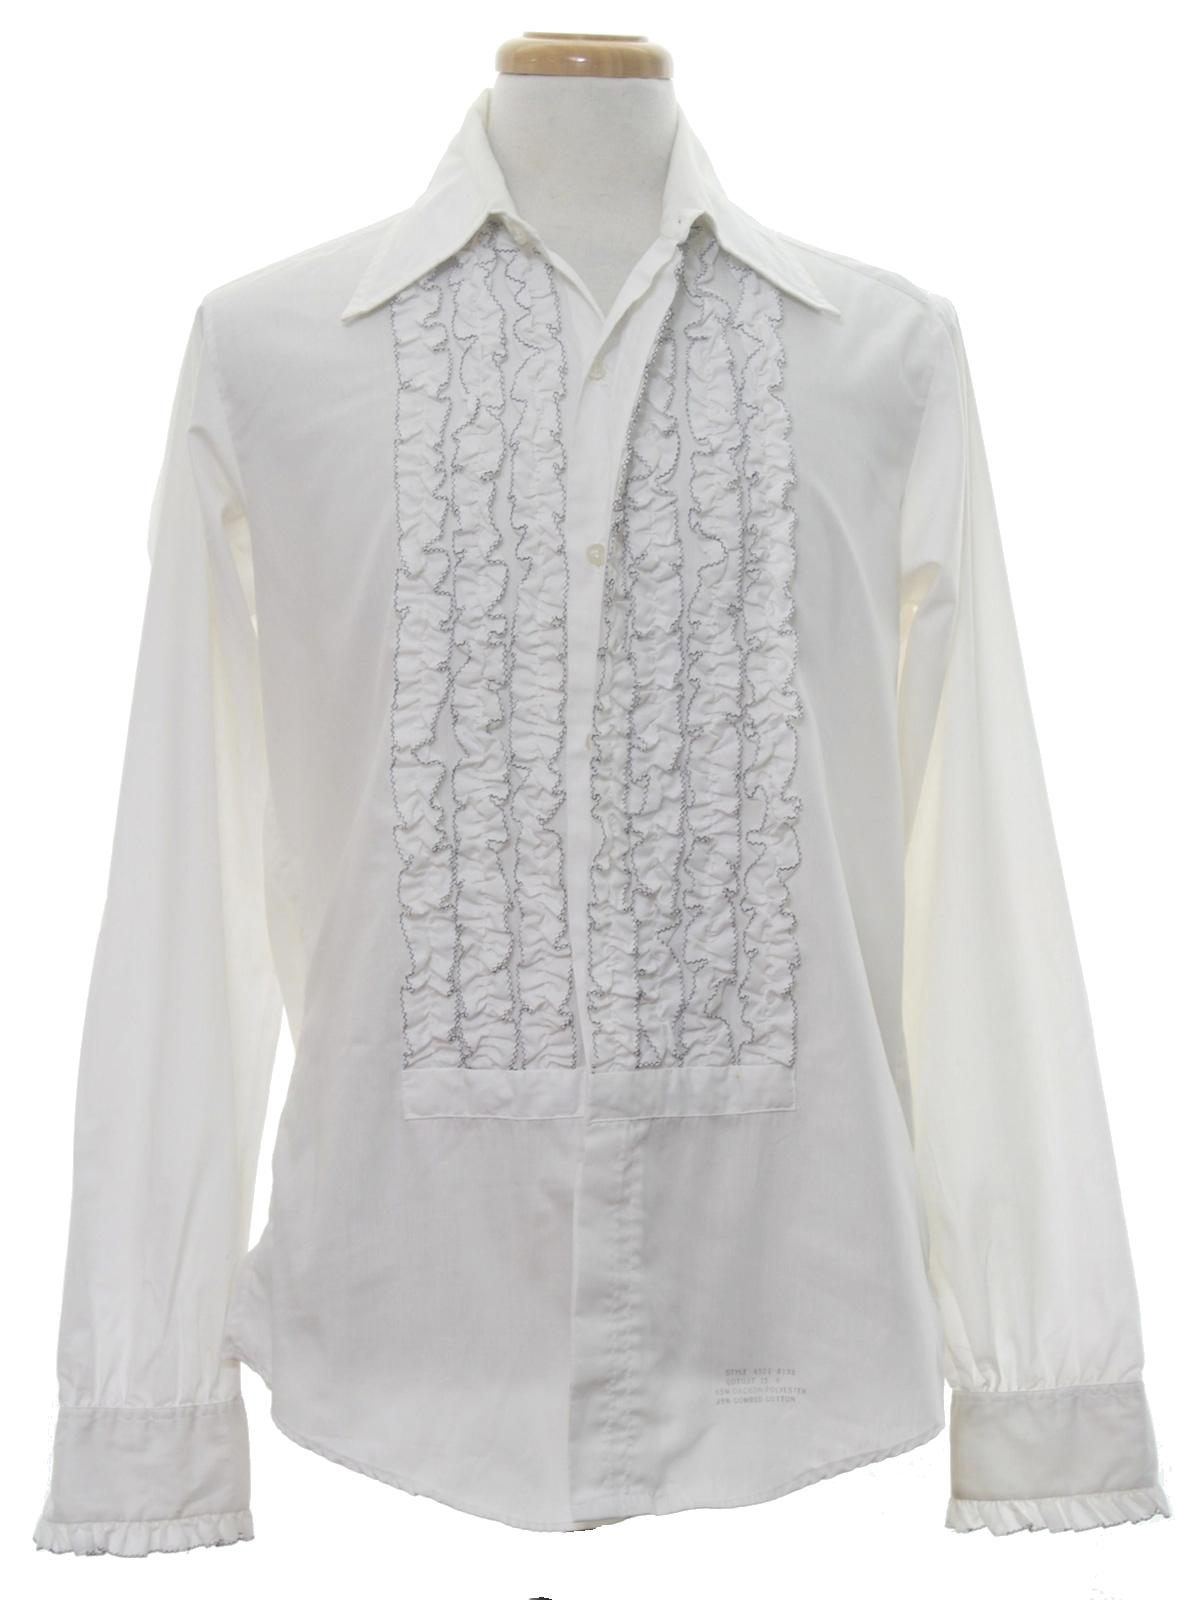 Retro 1970s shirt 70s delton mens white background for Mens dress shirts with cufflink holes